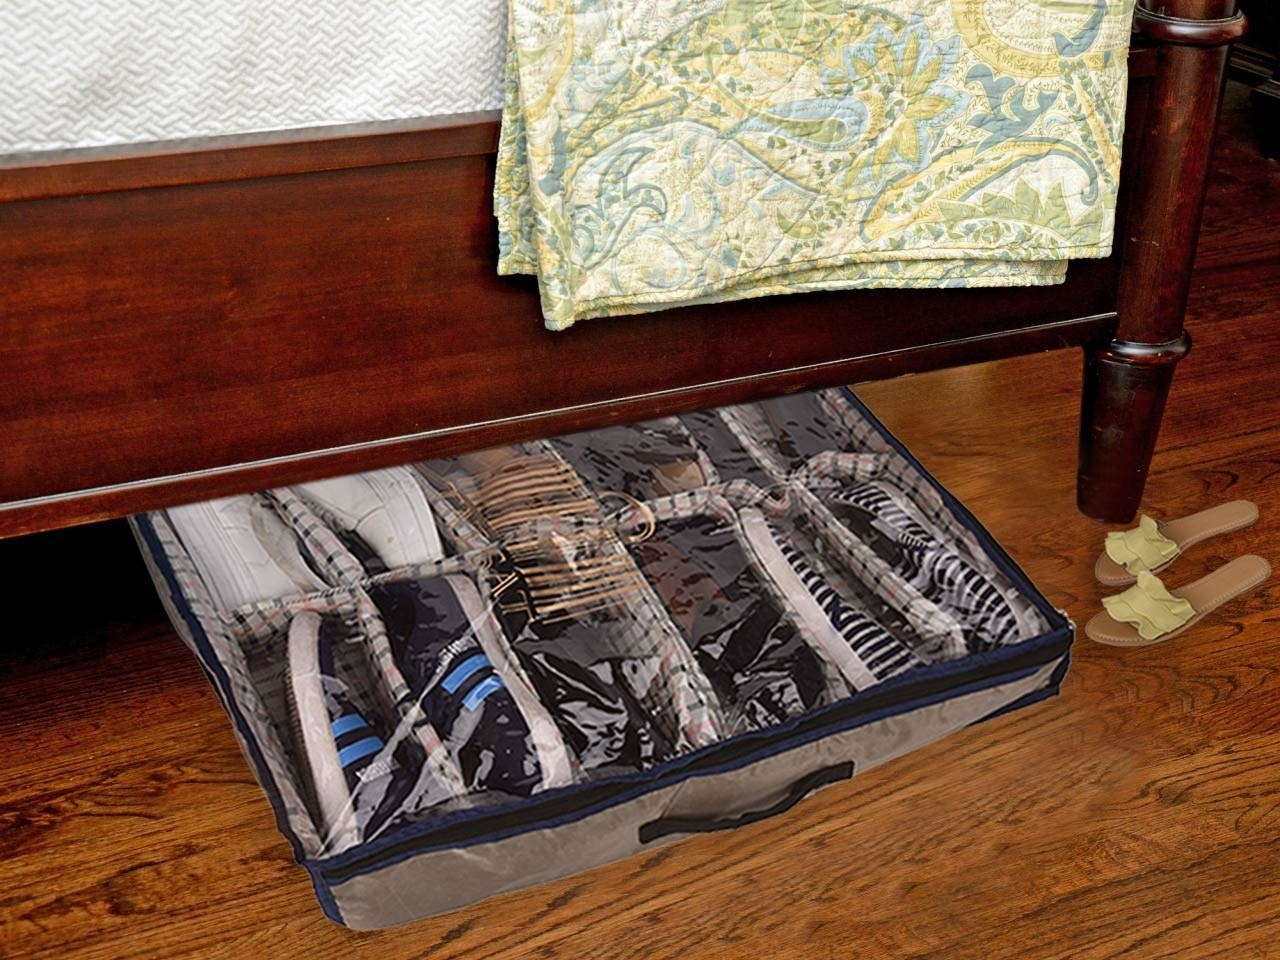 An under-bed shoe organiser with shoes in it under a bed